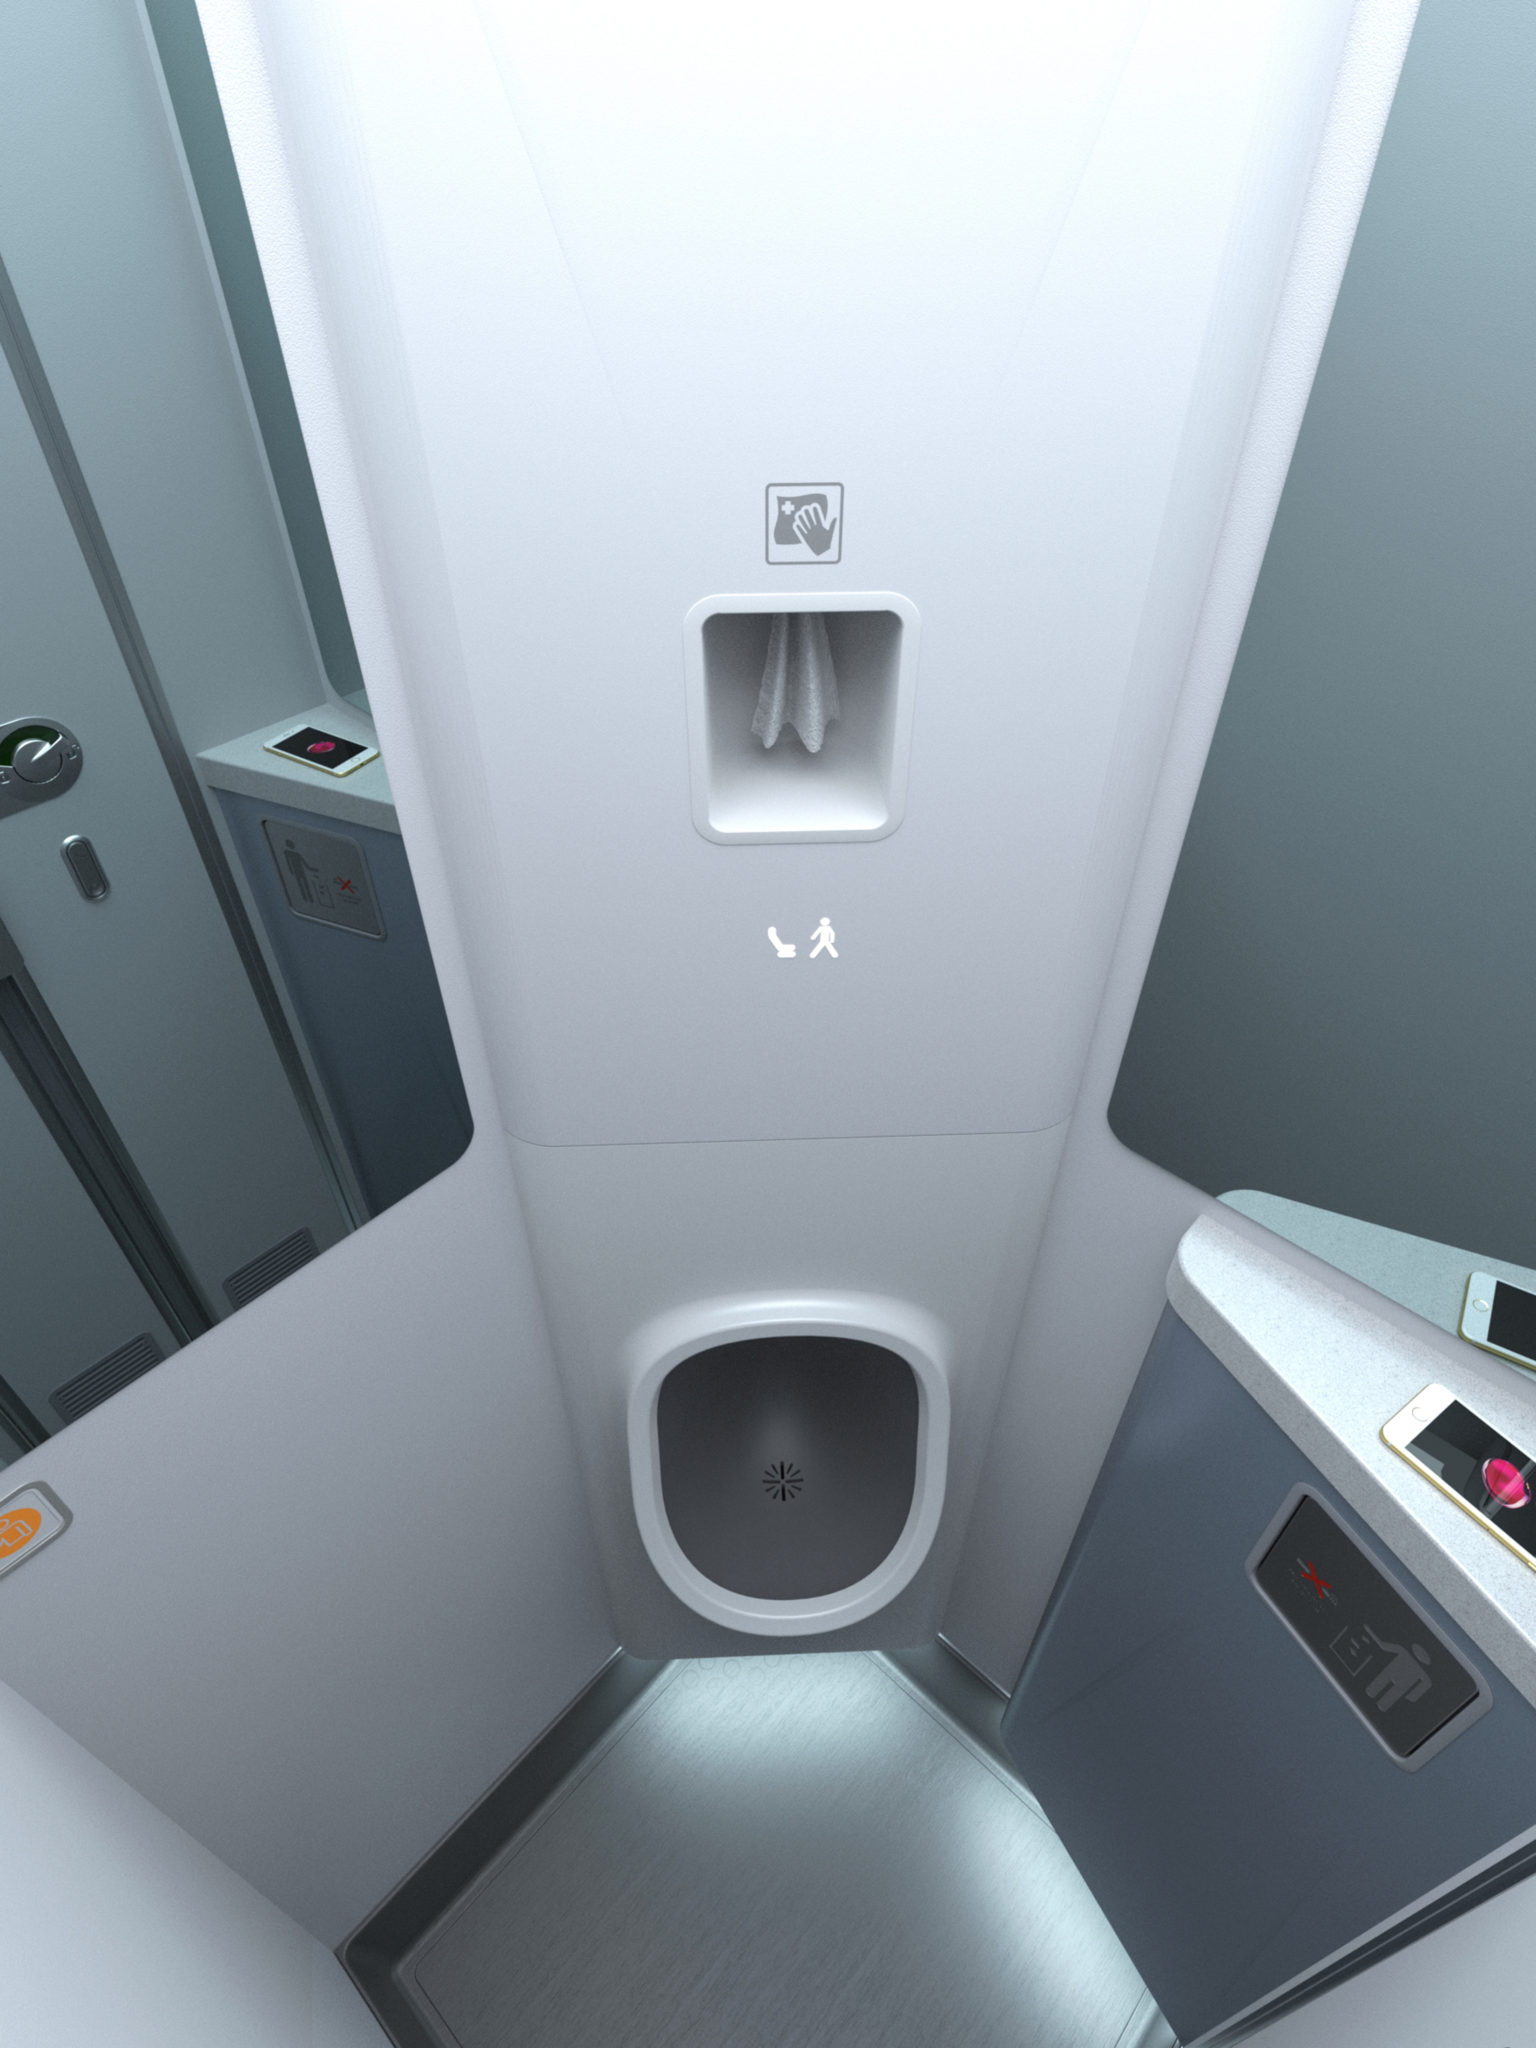 First Class A380 Lufthansa In The Unregulated Tiny Airline Lav Context, Is It Time